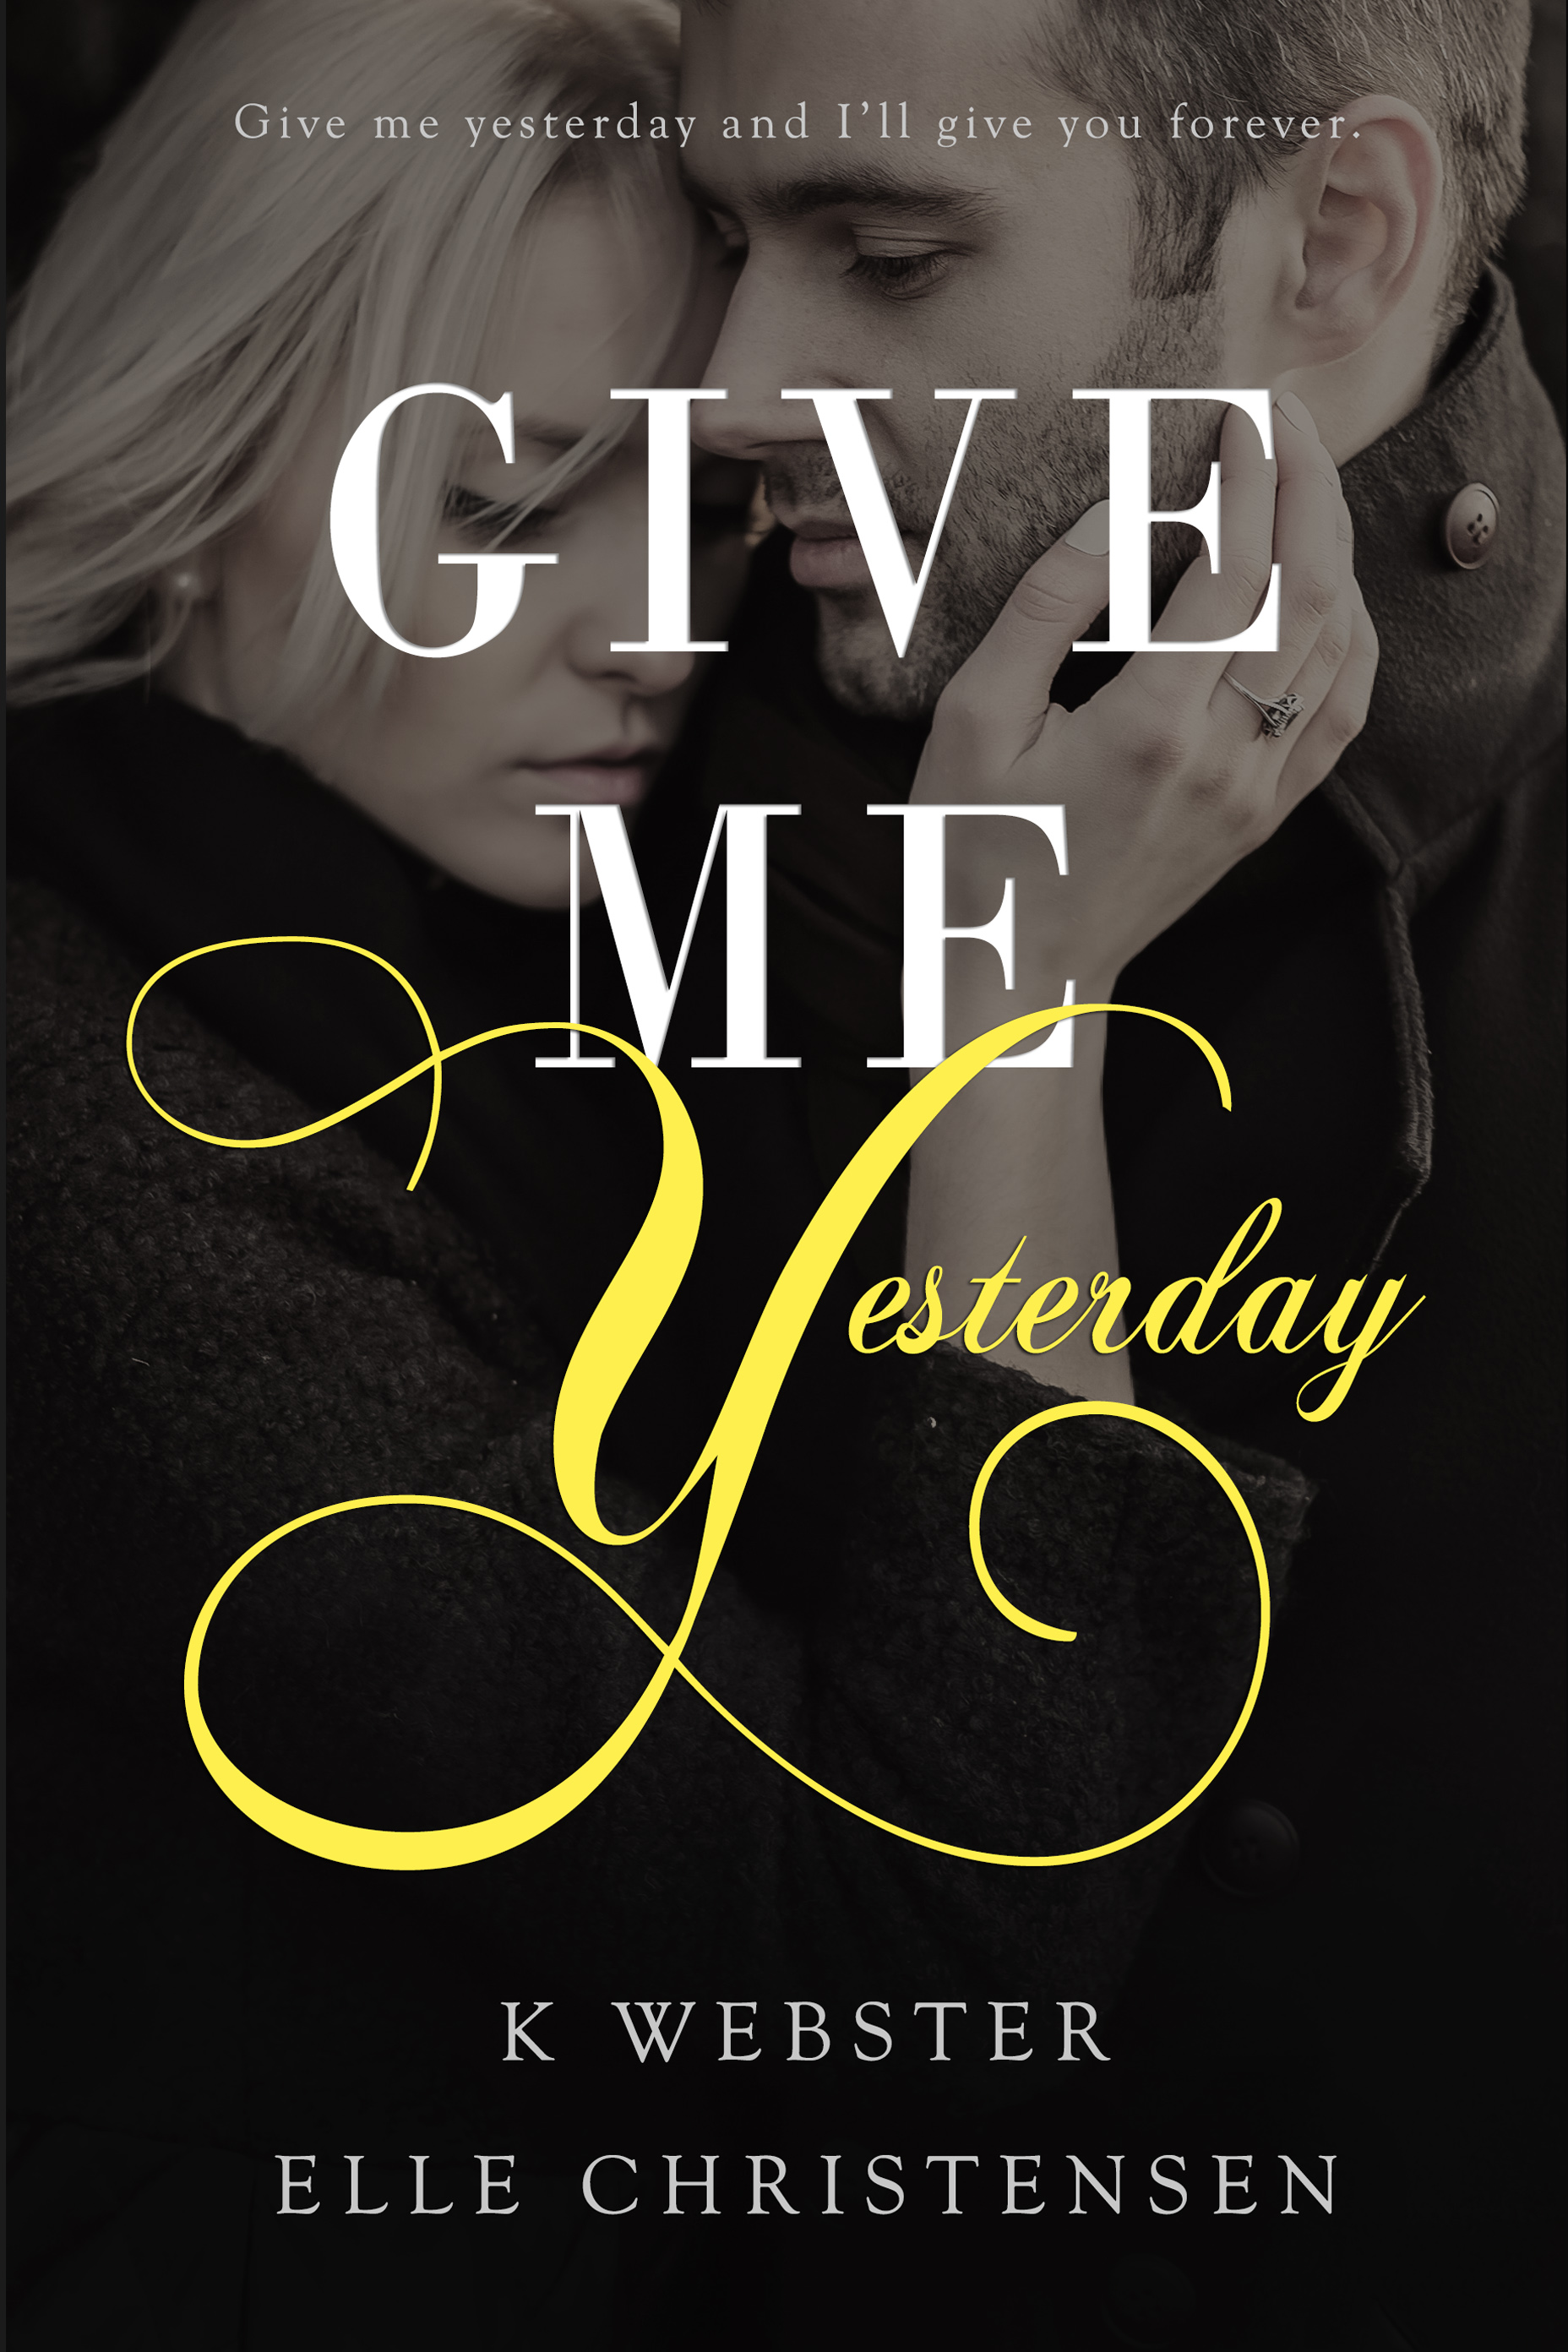 Givemeyesterdaycover1